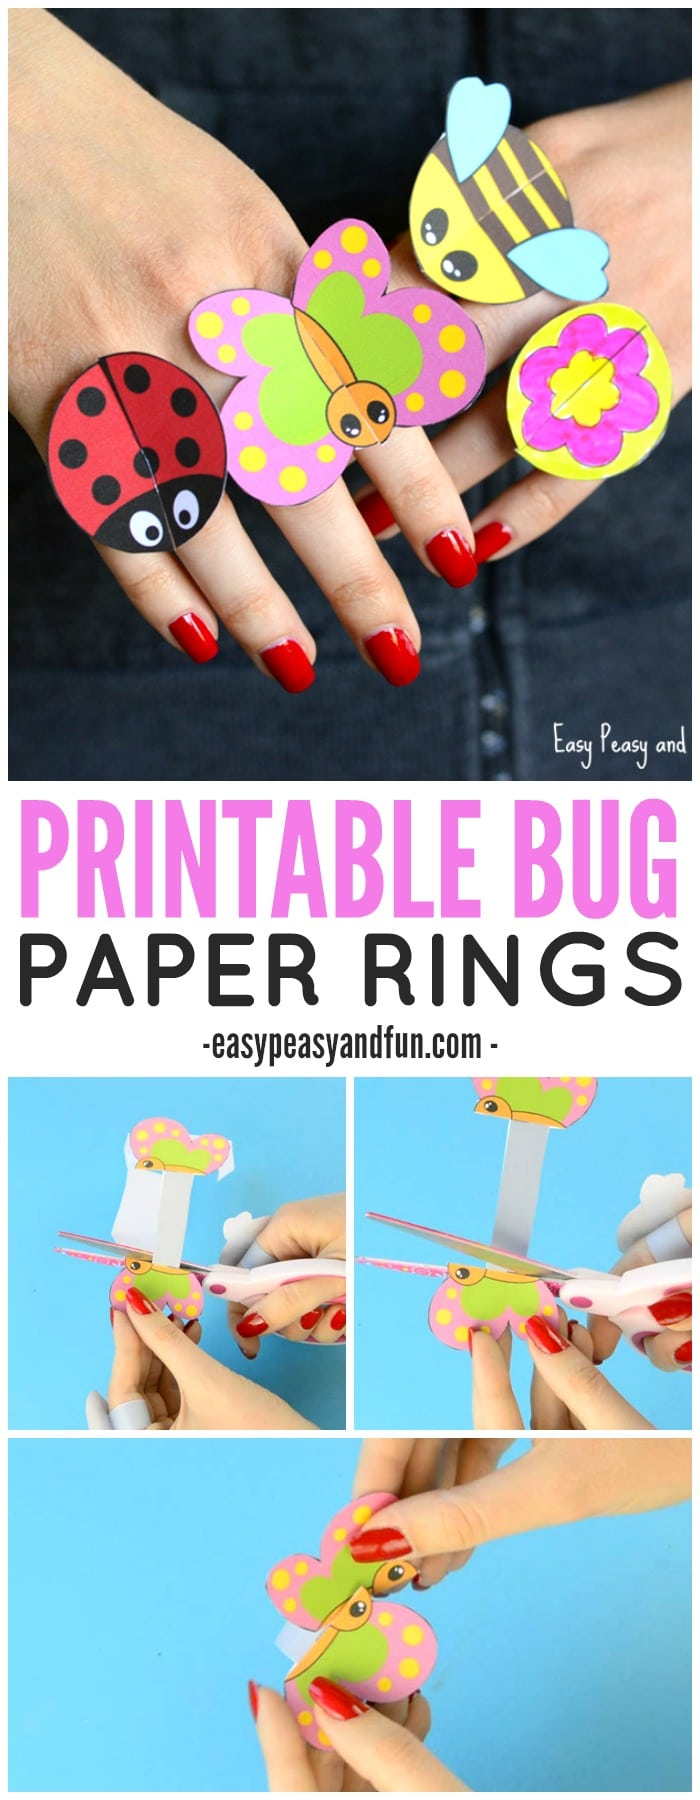 printable easter paper rings printable bug paper rings for craft template easy 5287